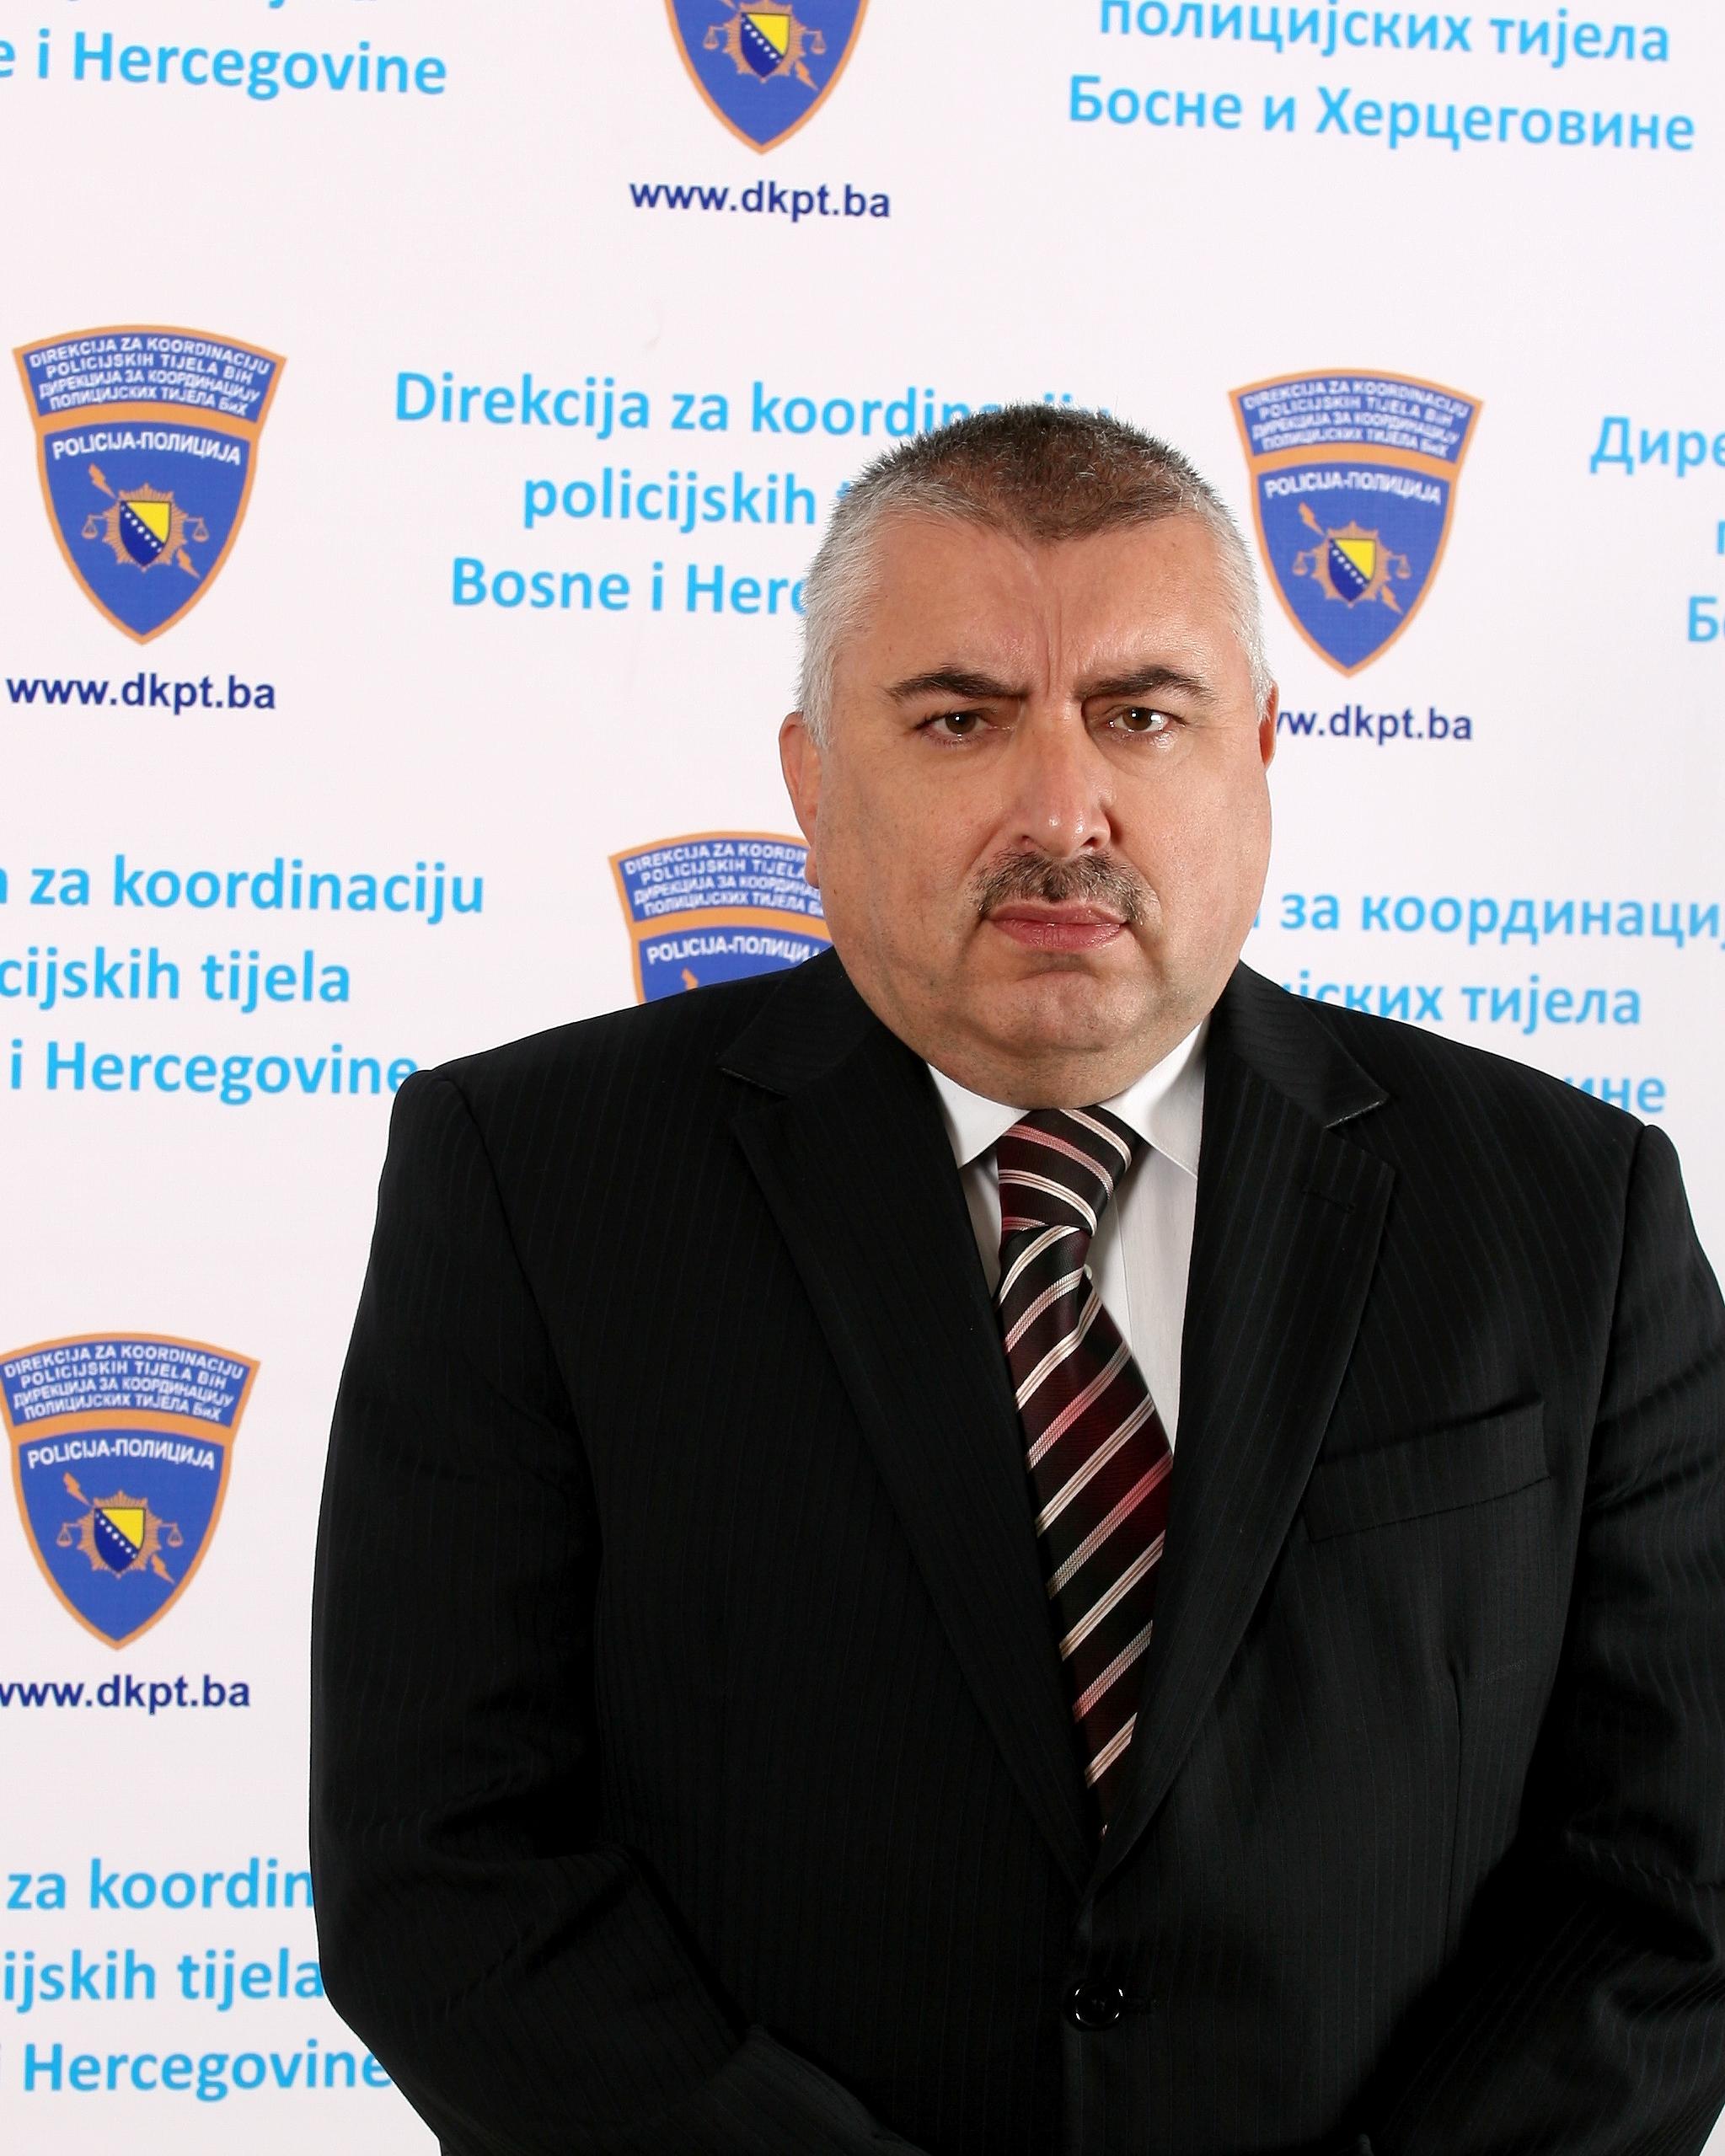 Security Situation in BiH Is Not Compromised After the Bomb Attacks in Boston